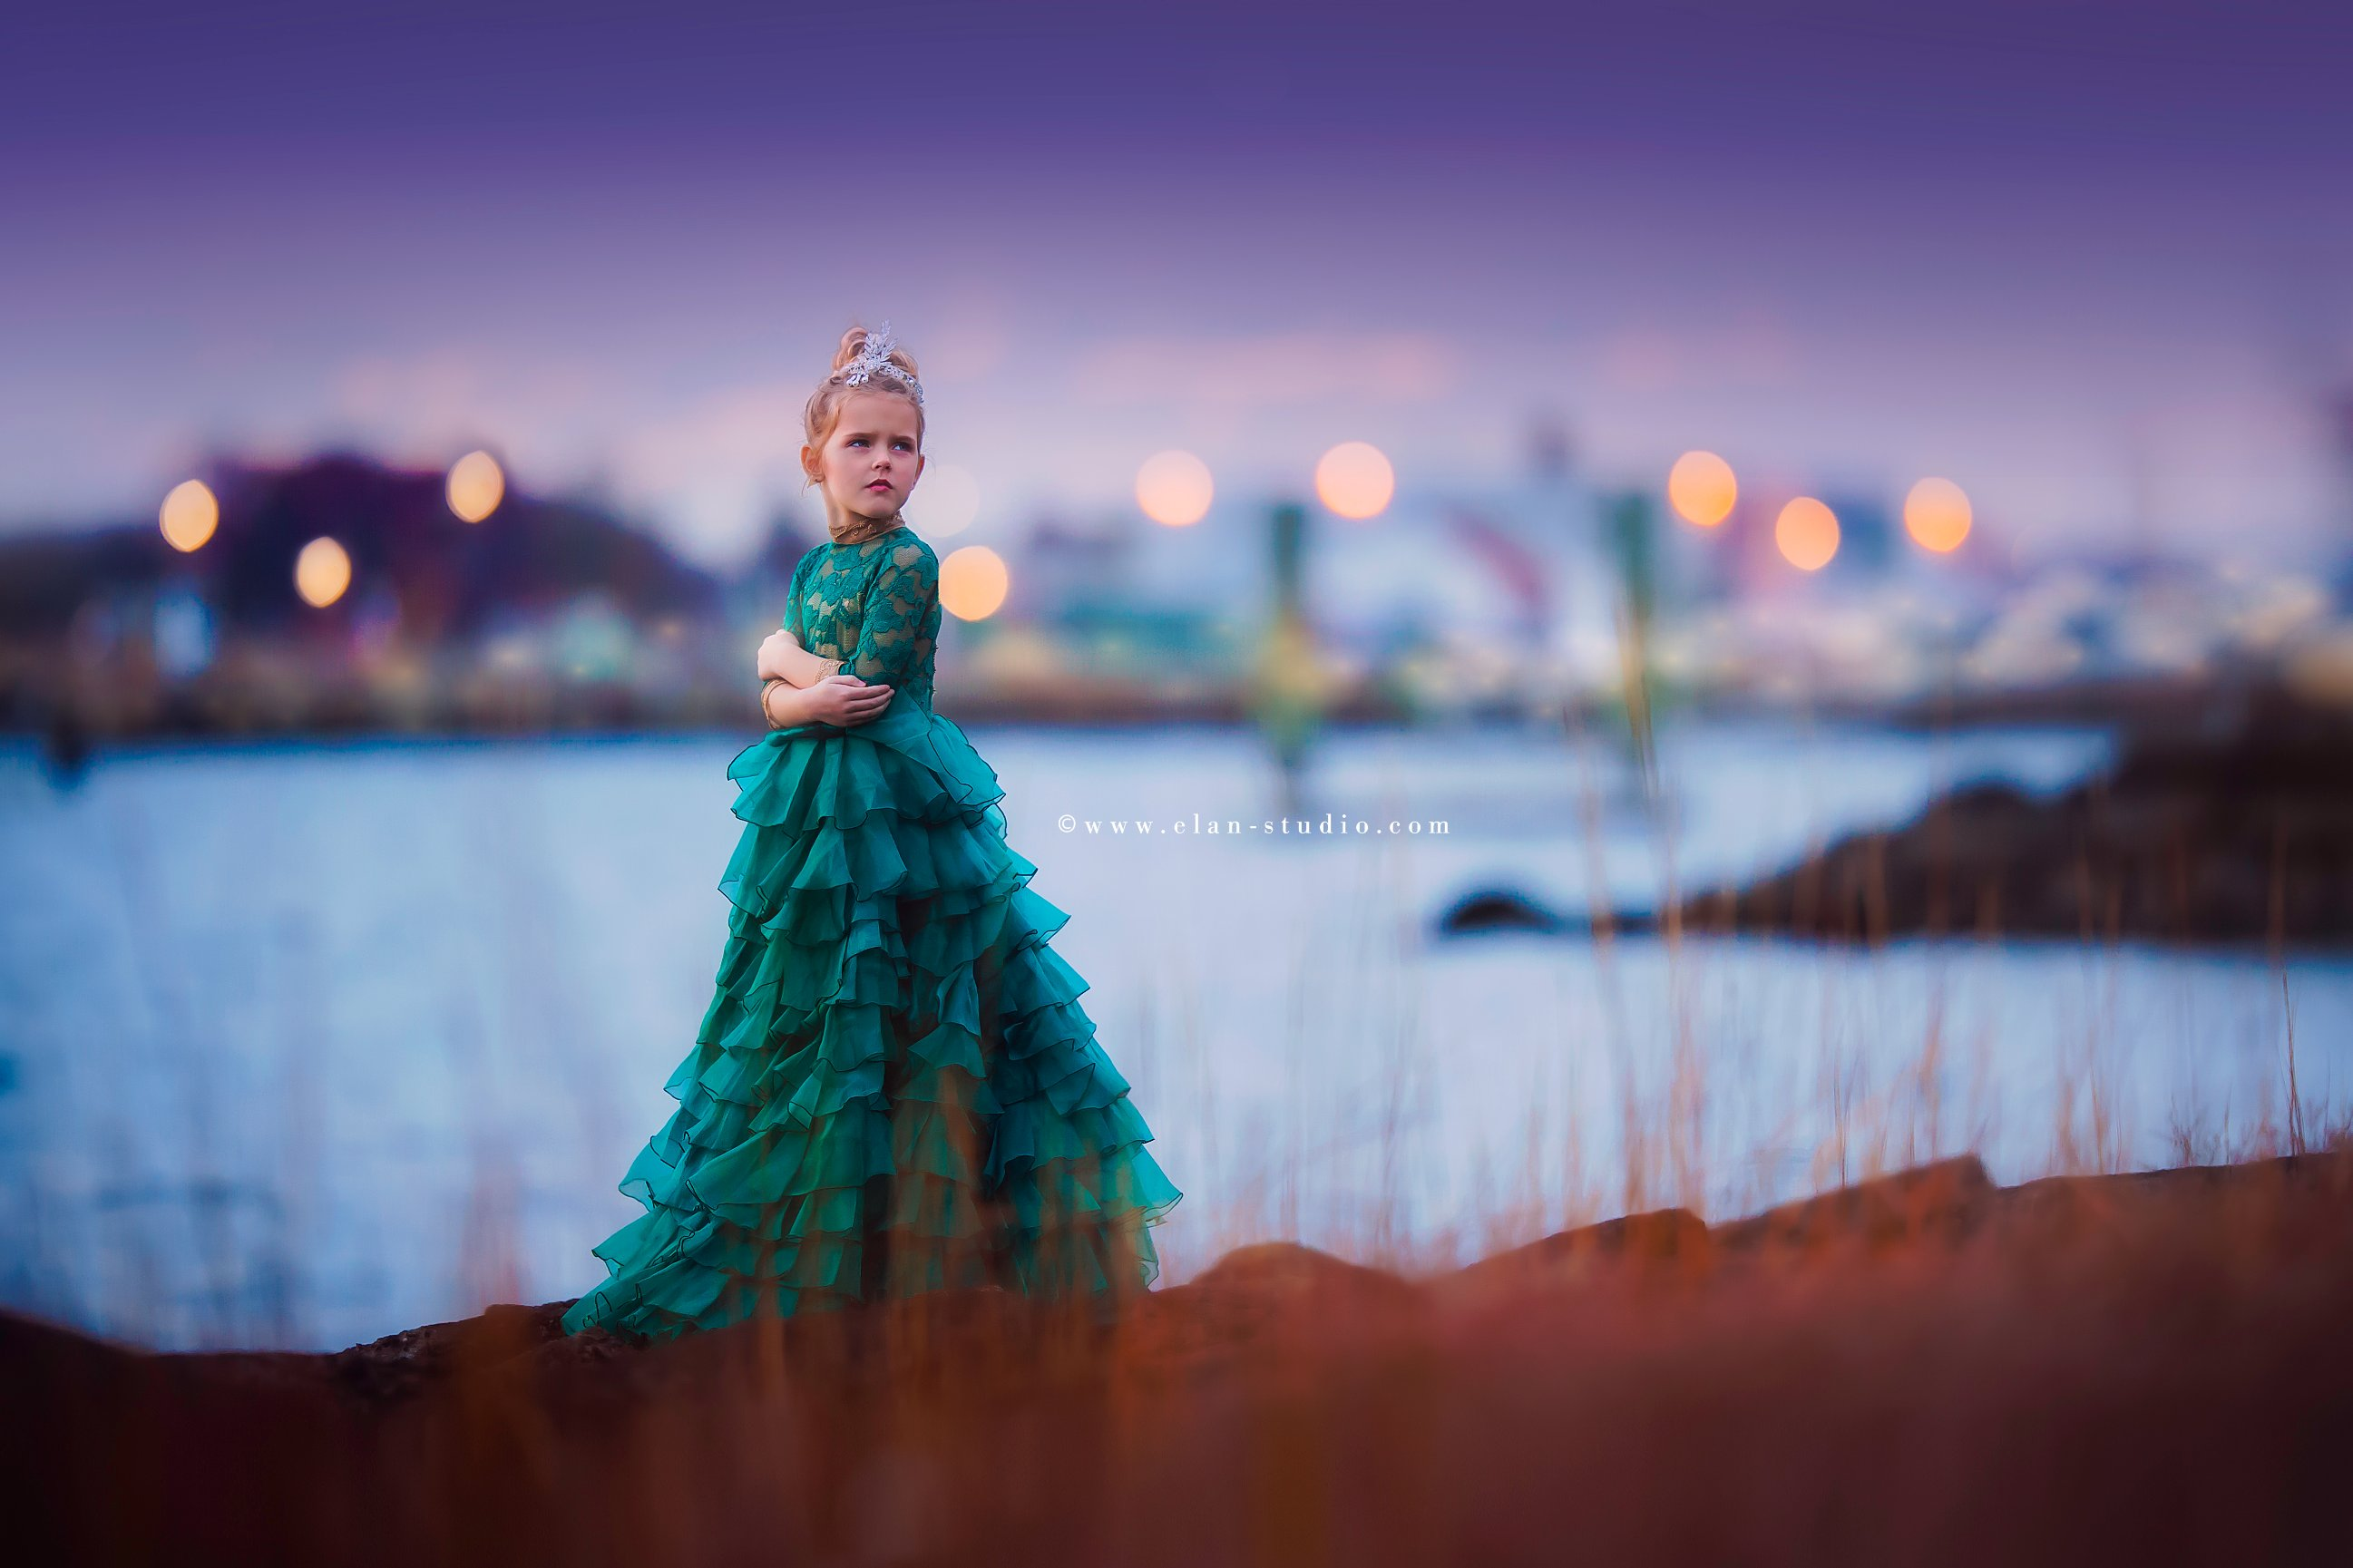 beautiful little girl princess in full green dress, wearing crown